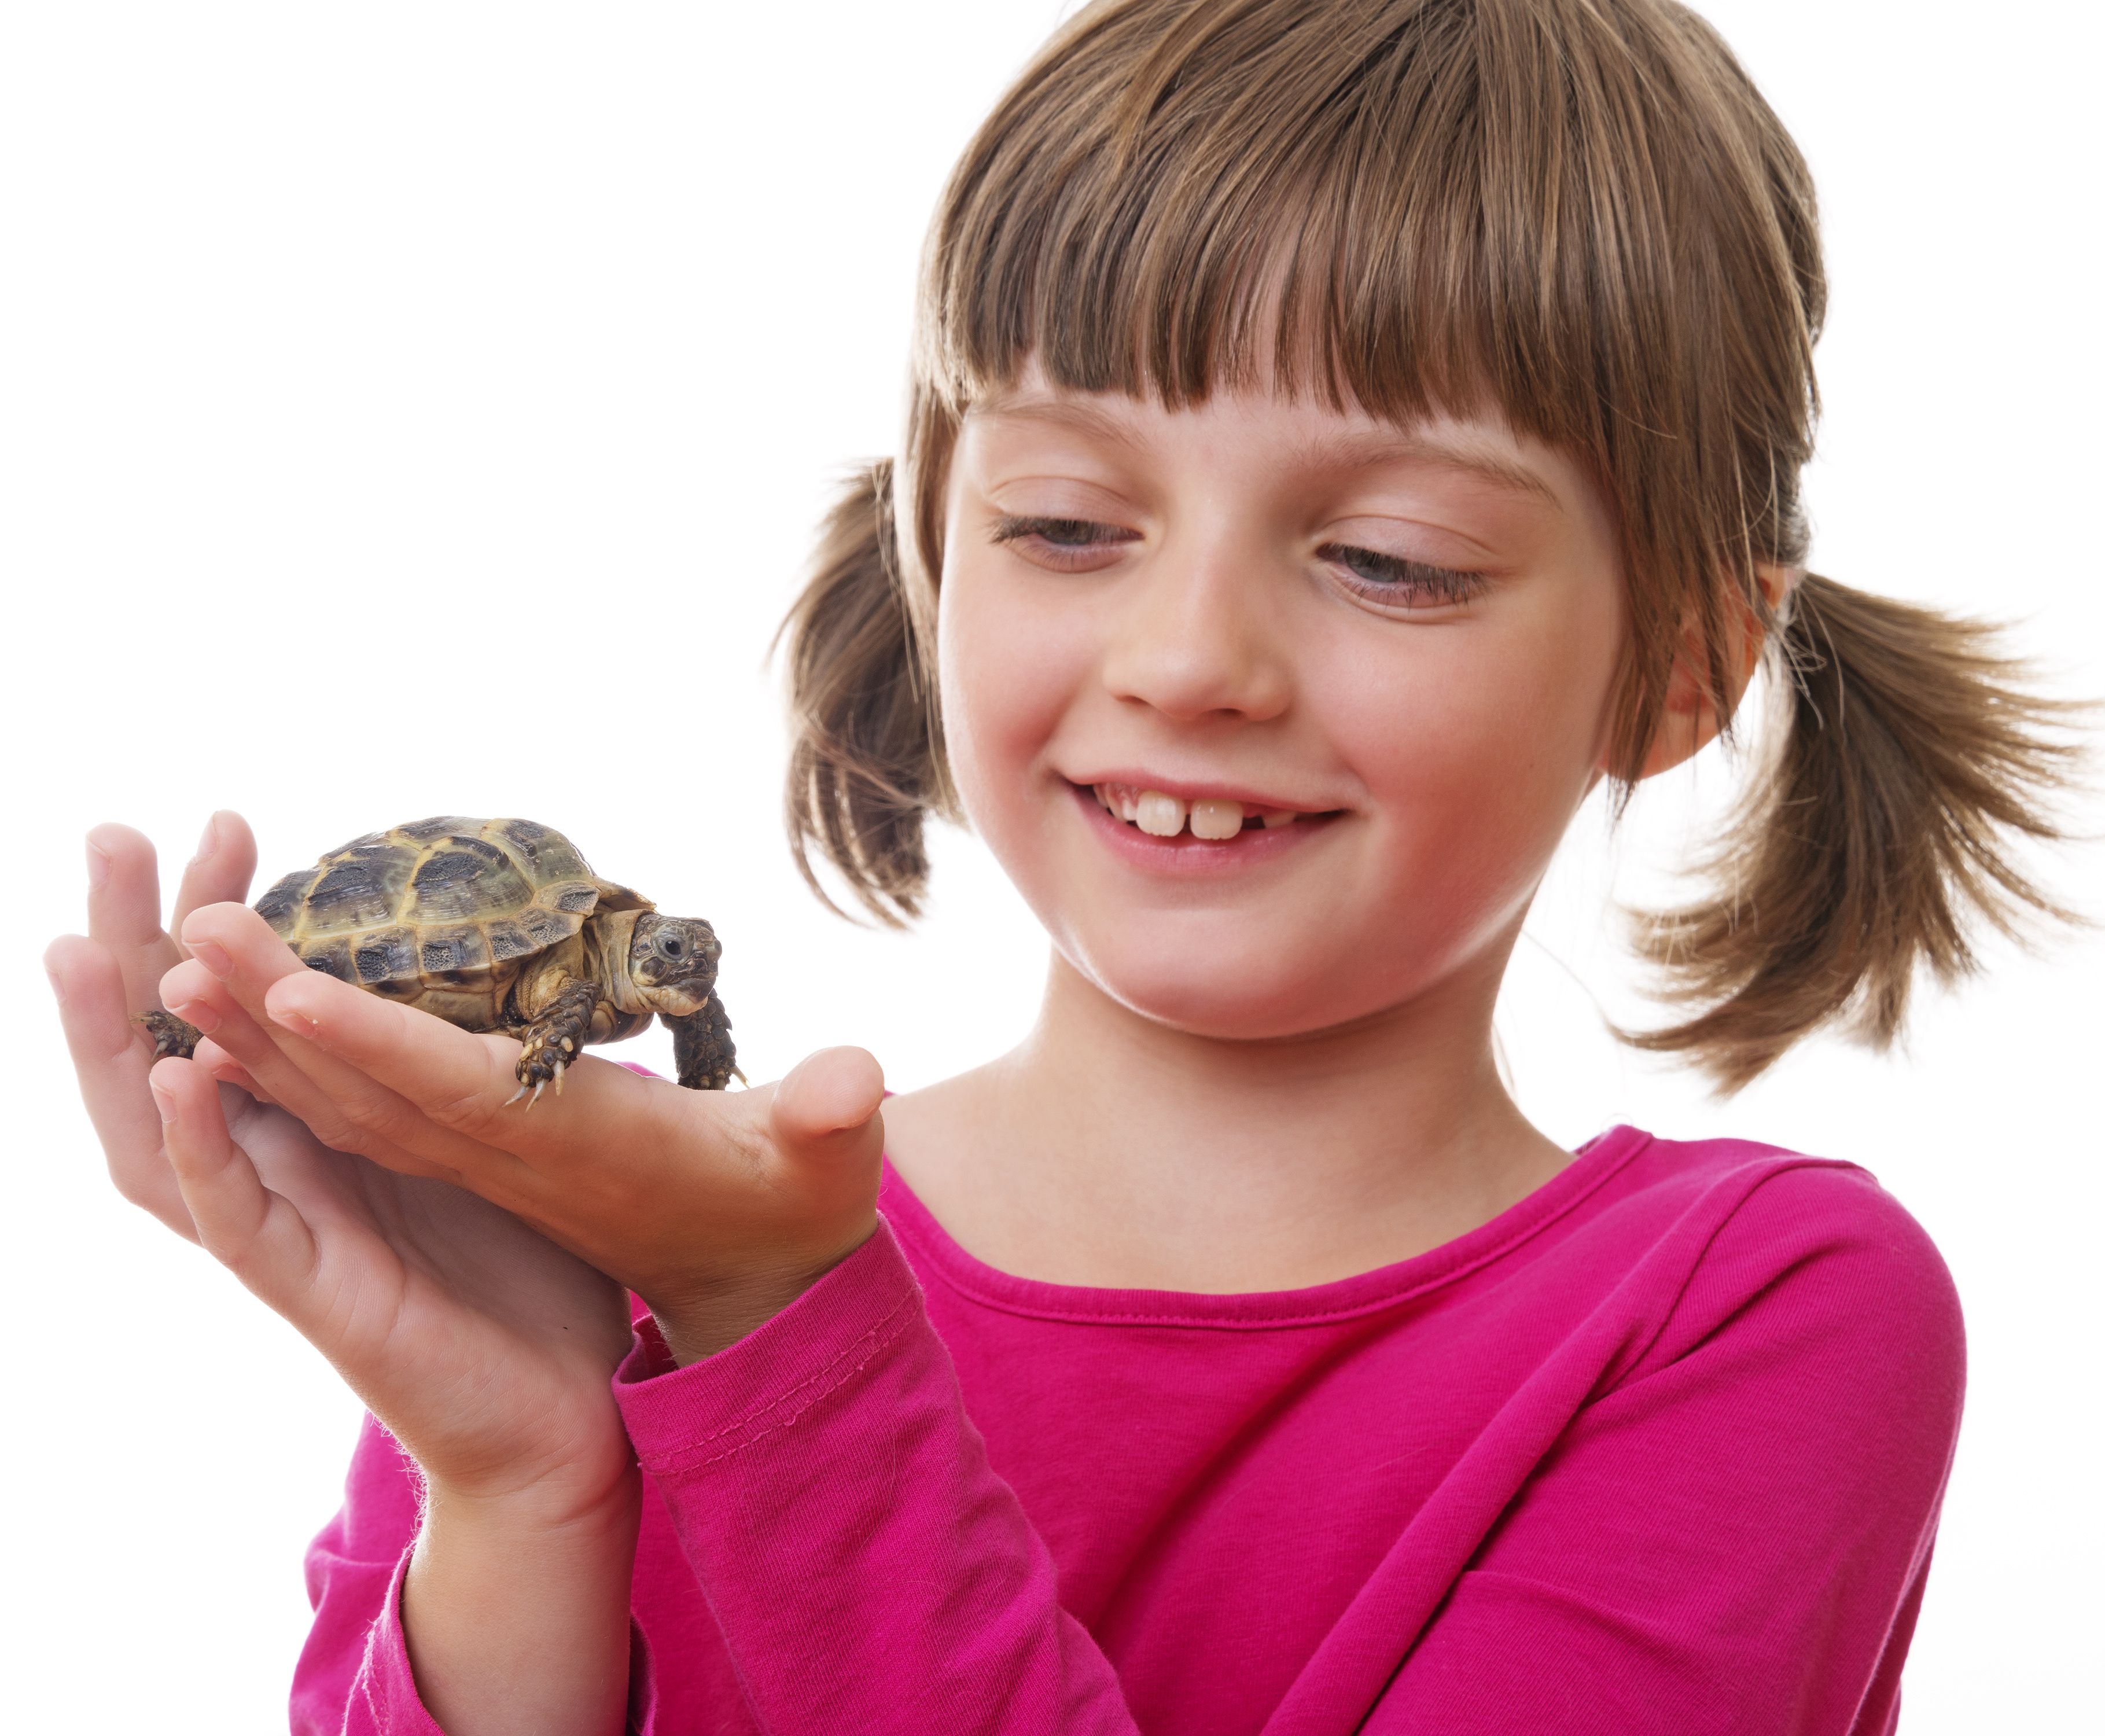 happly little girl holding a pet turtle from Animal school visits Manchester